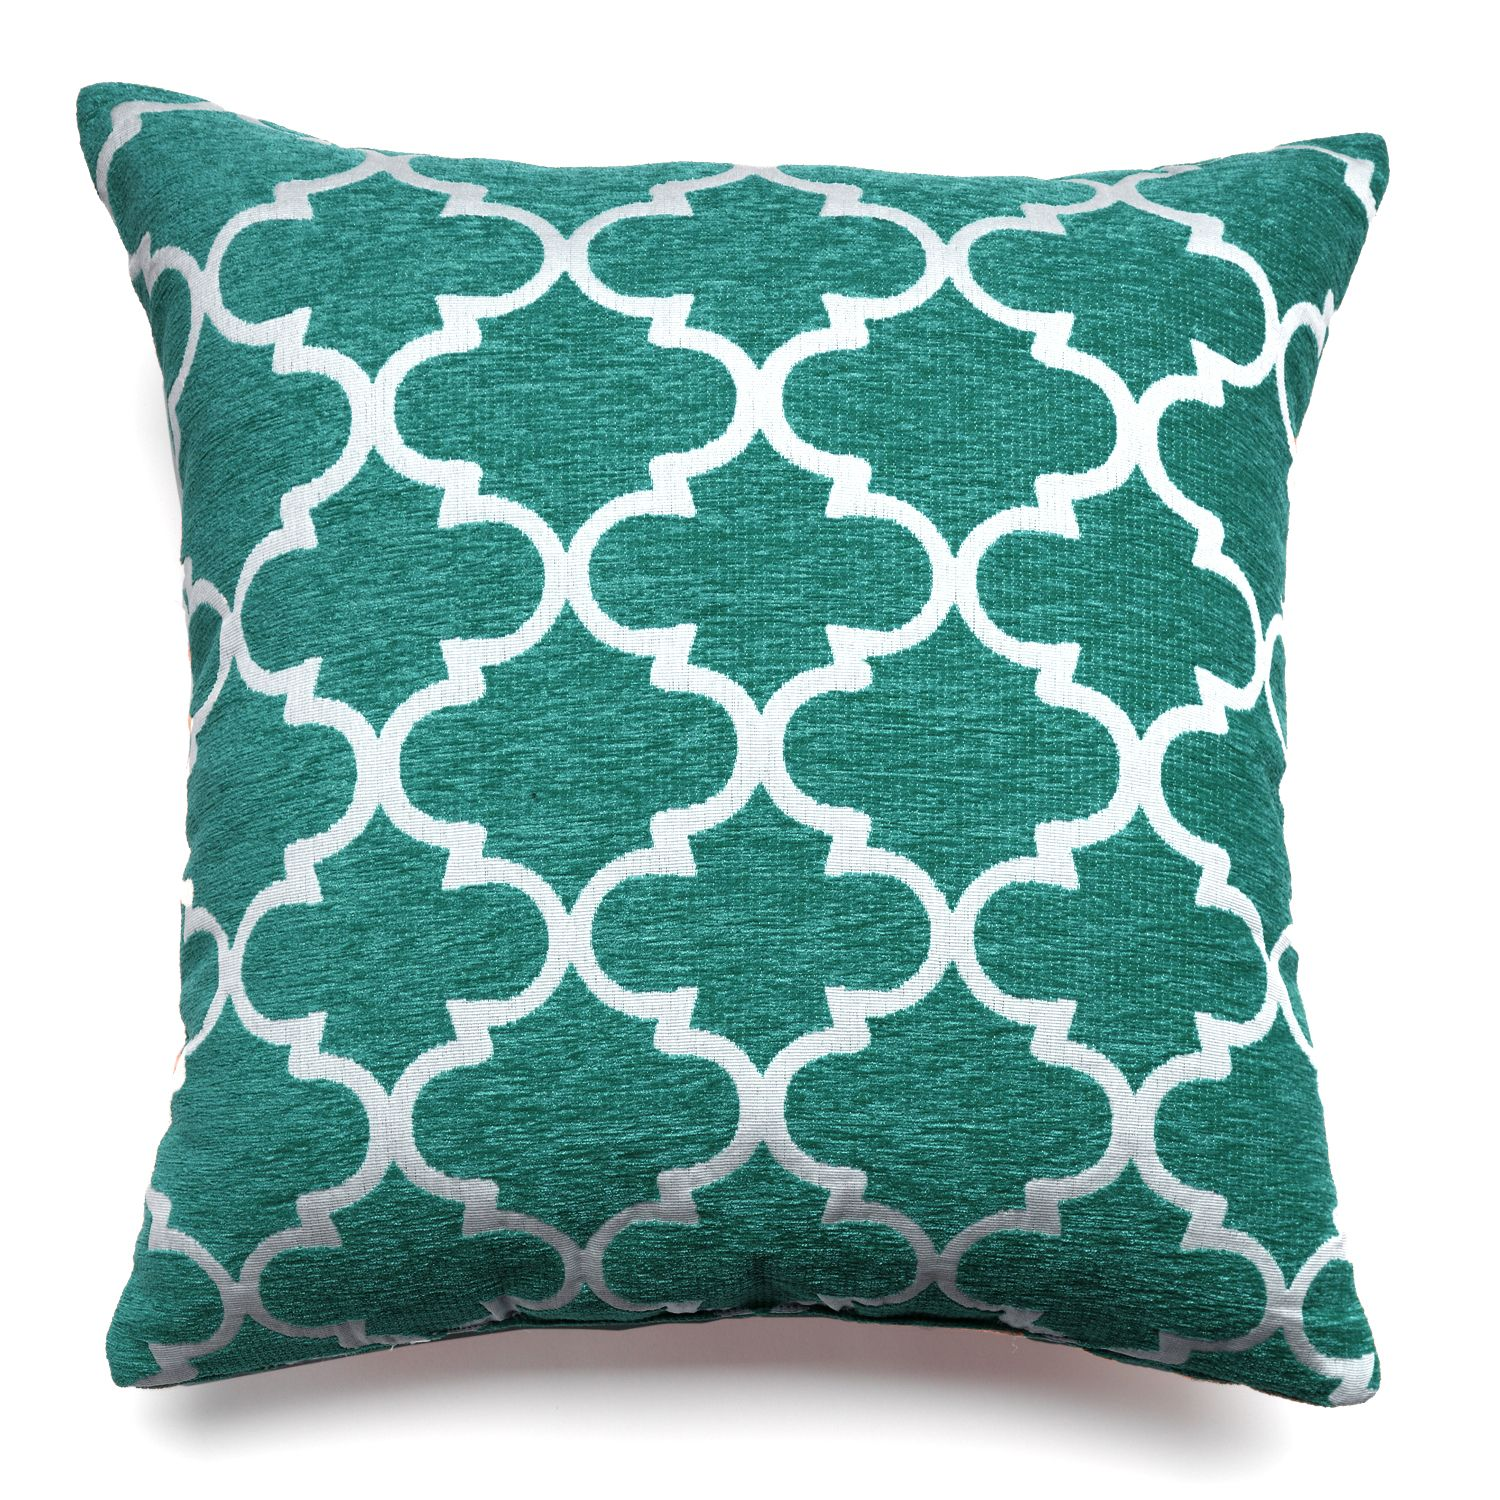 Accent Pillows For Sofa Vintage Flower Throw Pillows For